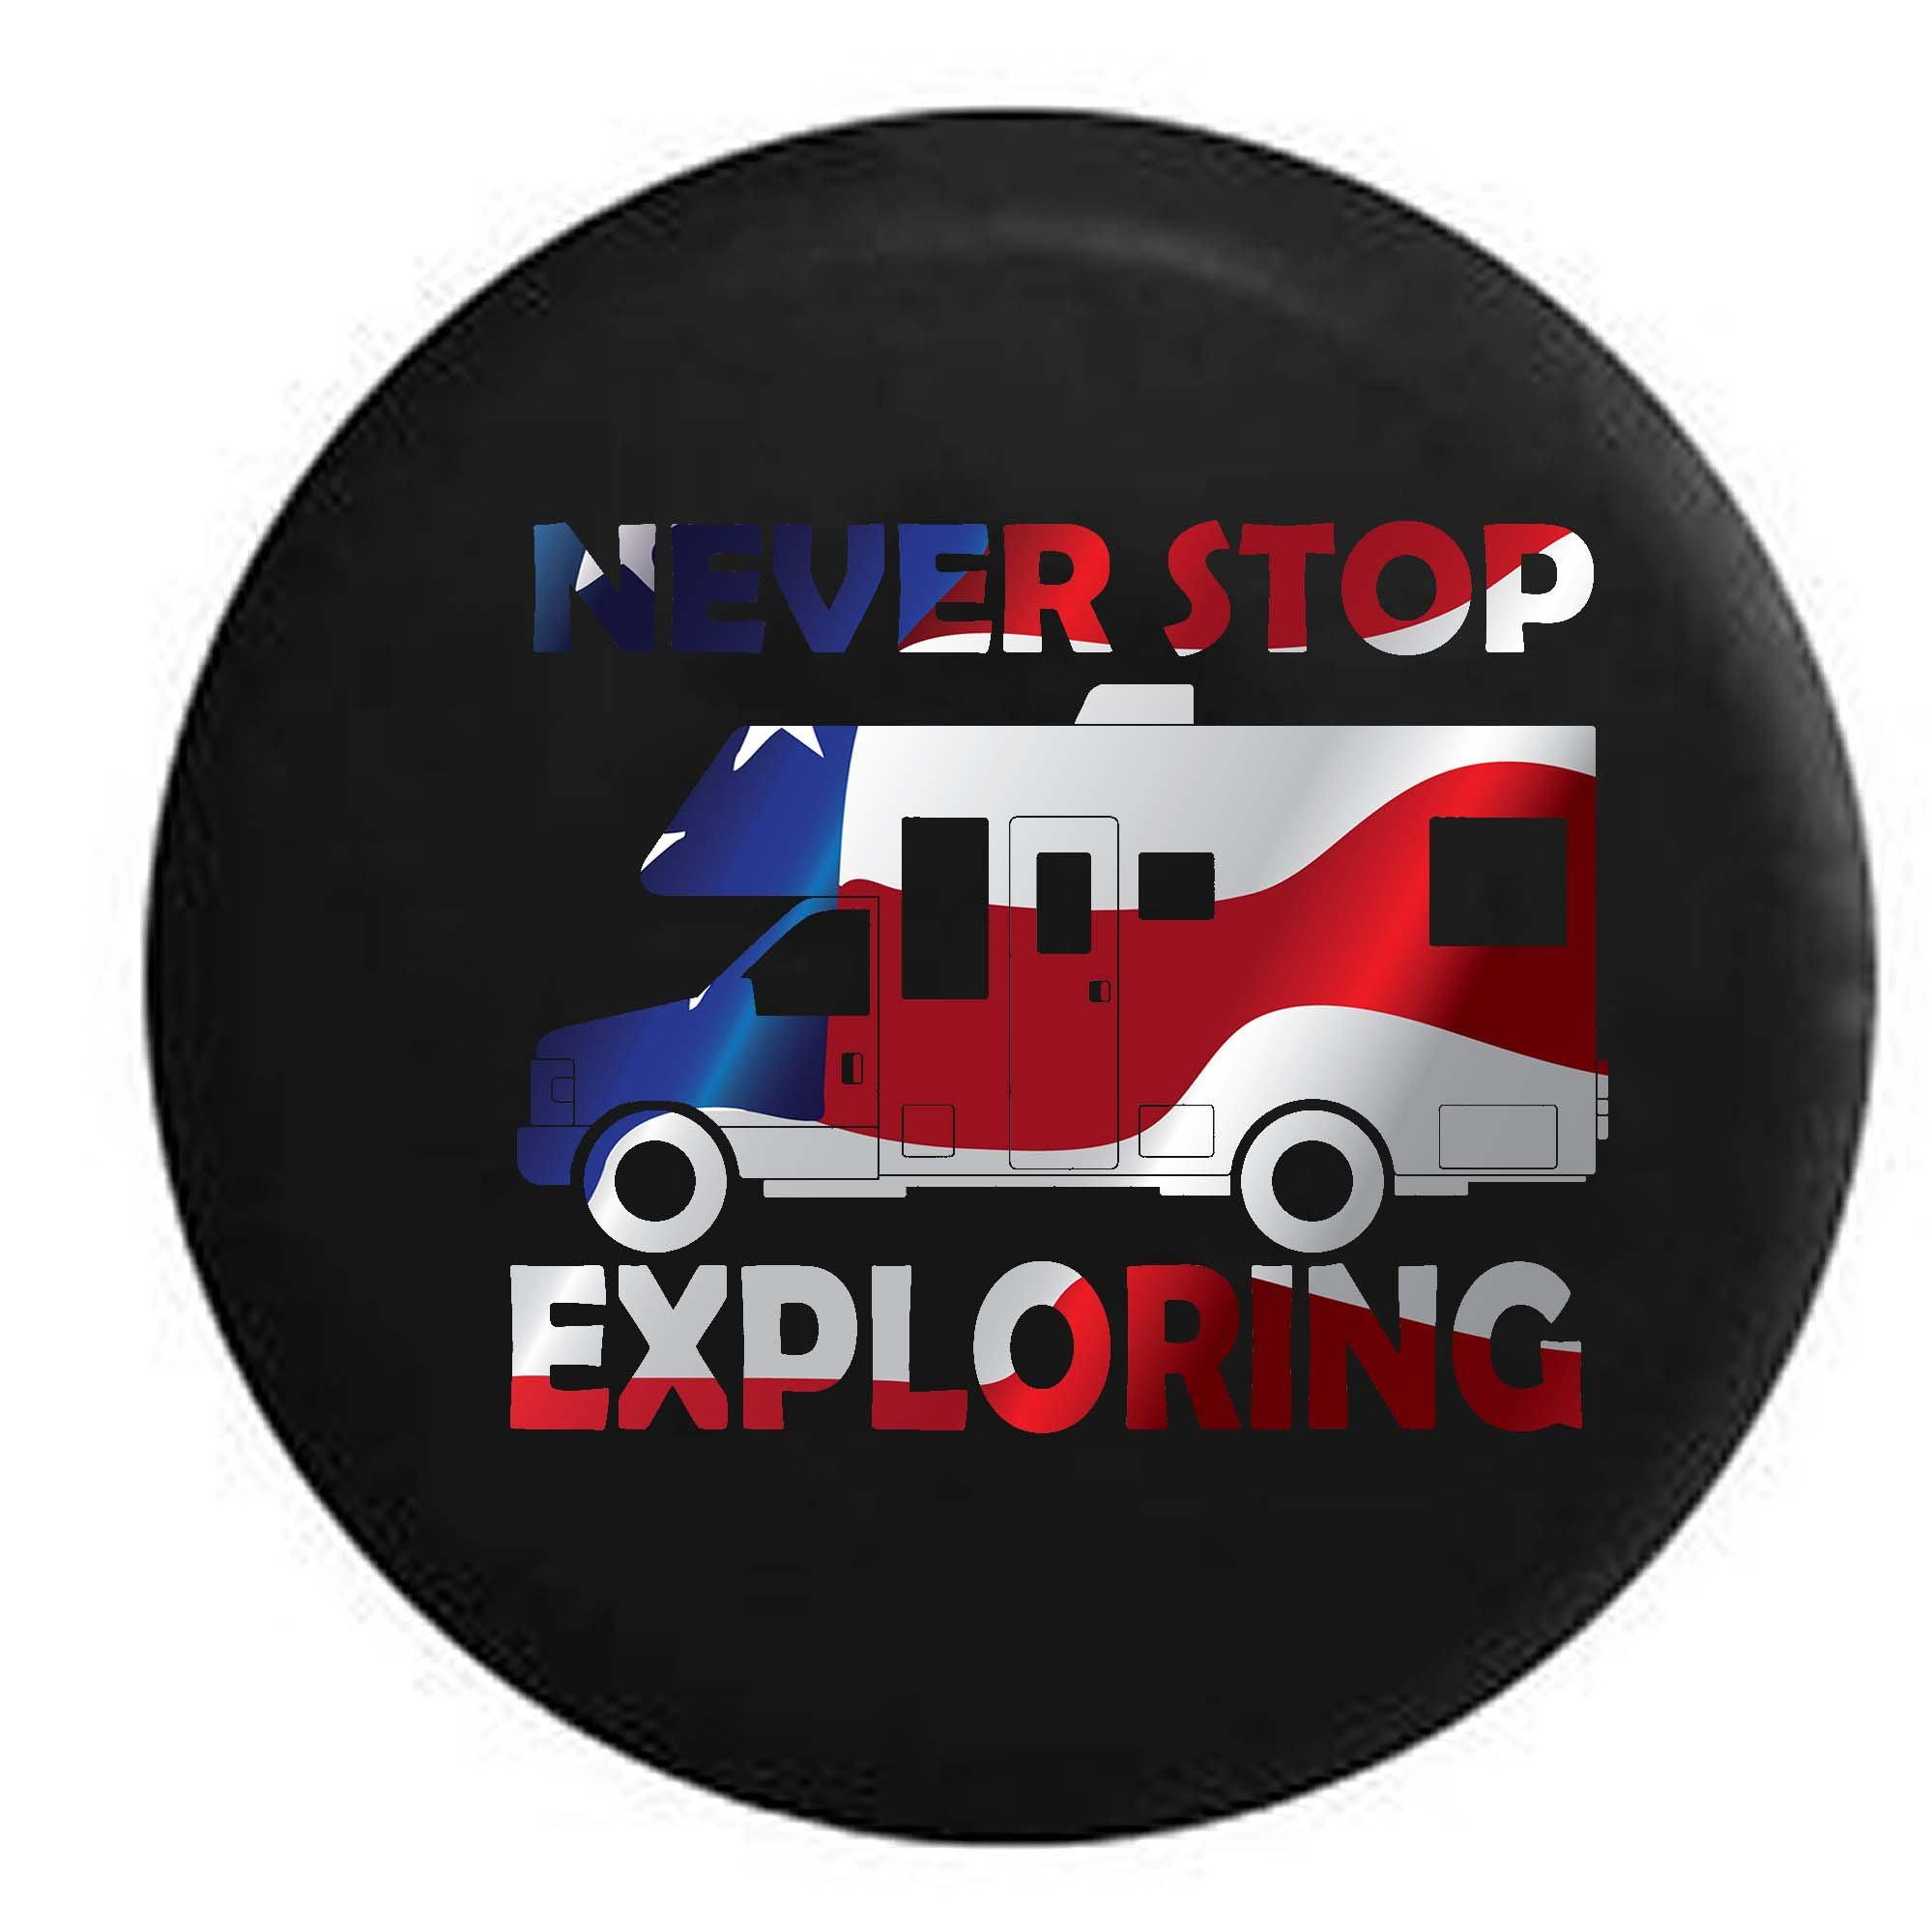 Pike Outdoors Flag - Never Stop Exploring RV Motorhome Travel Spare Tire Cover OEM Vinyl Black 29 in by Pike Outdoors